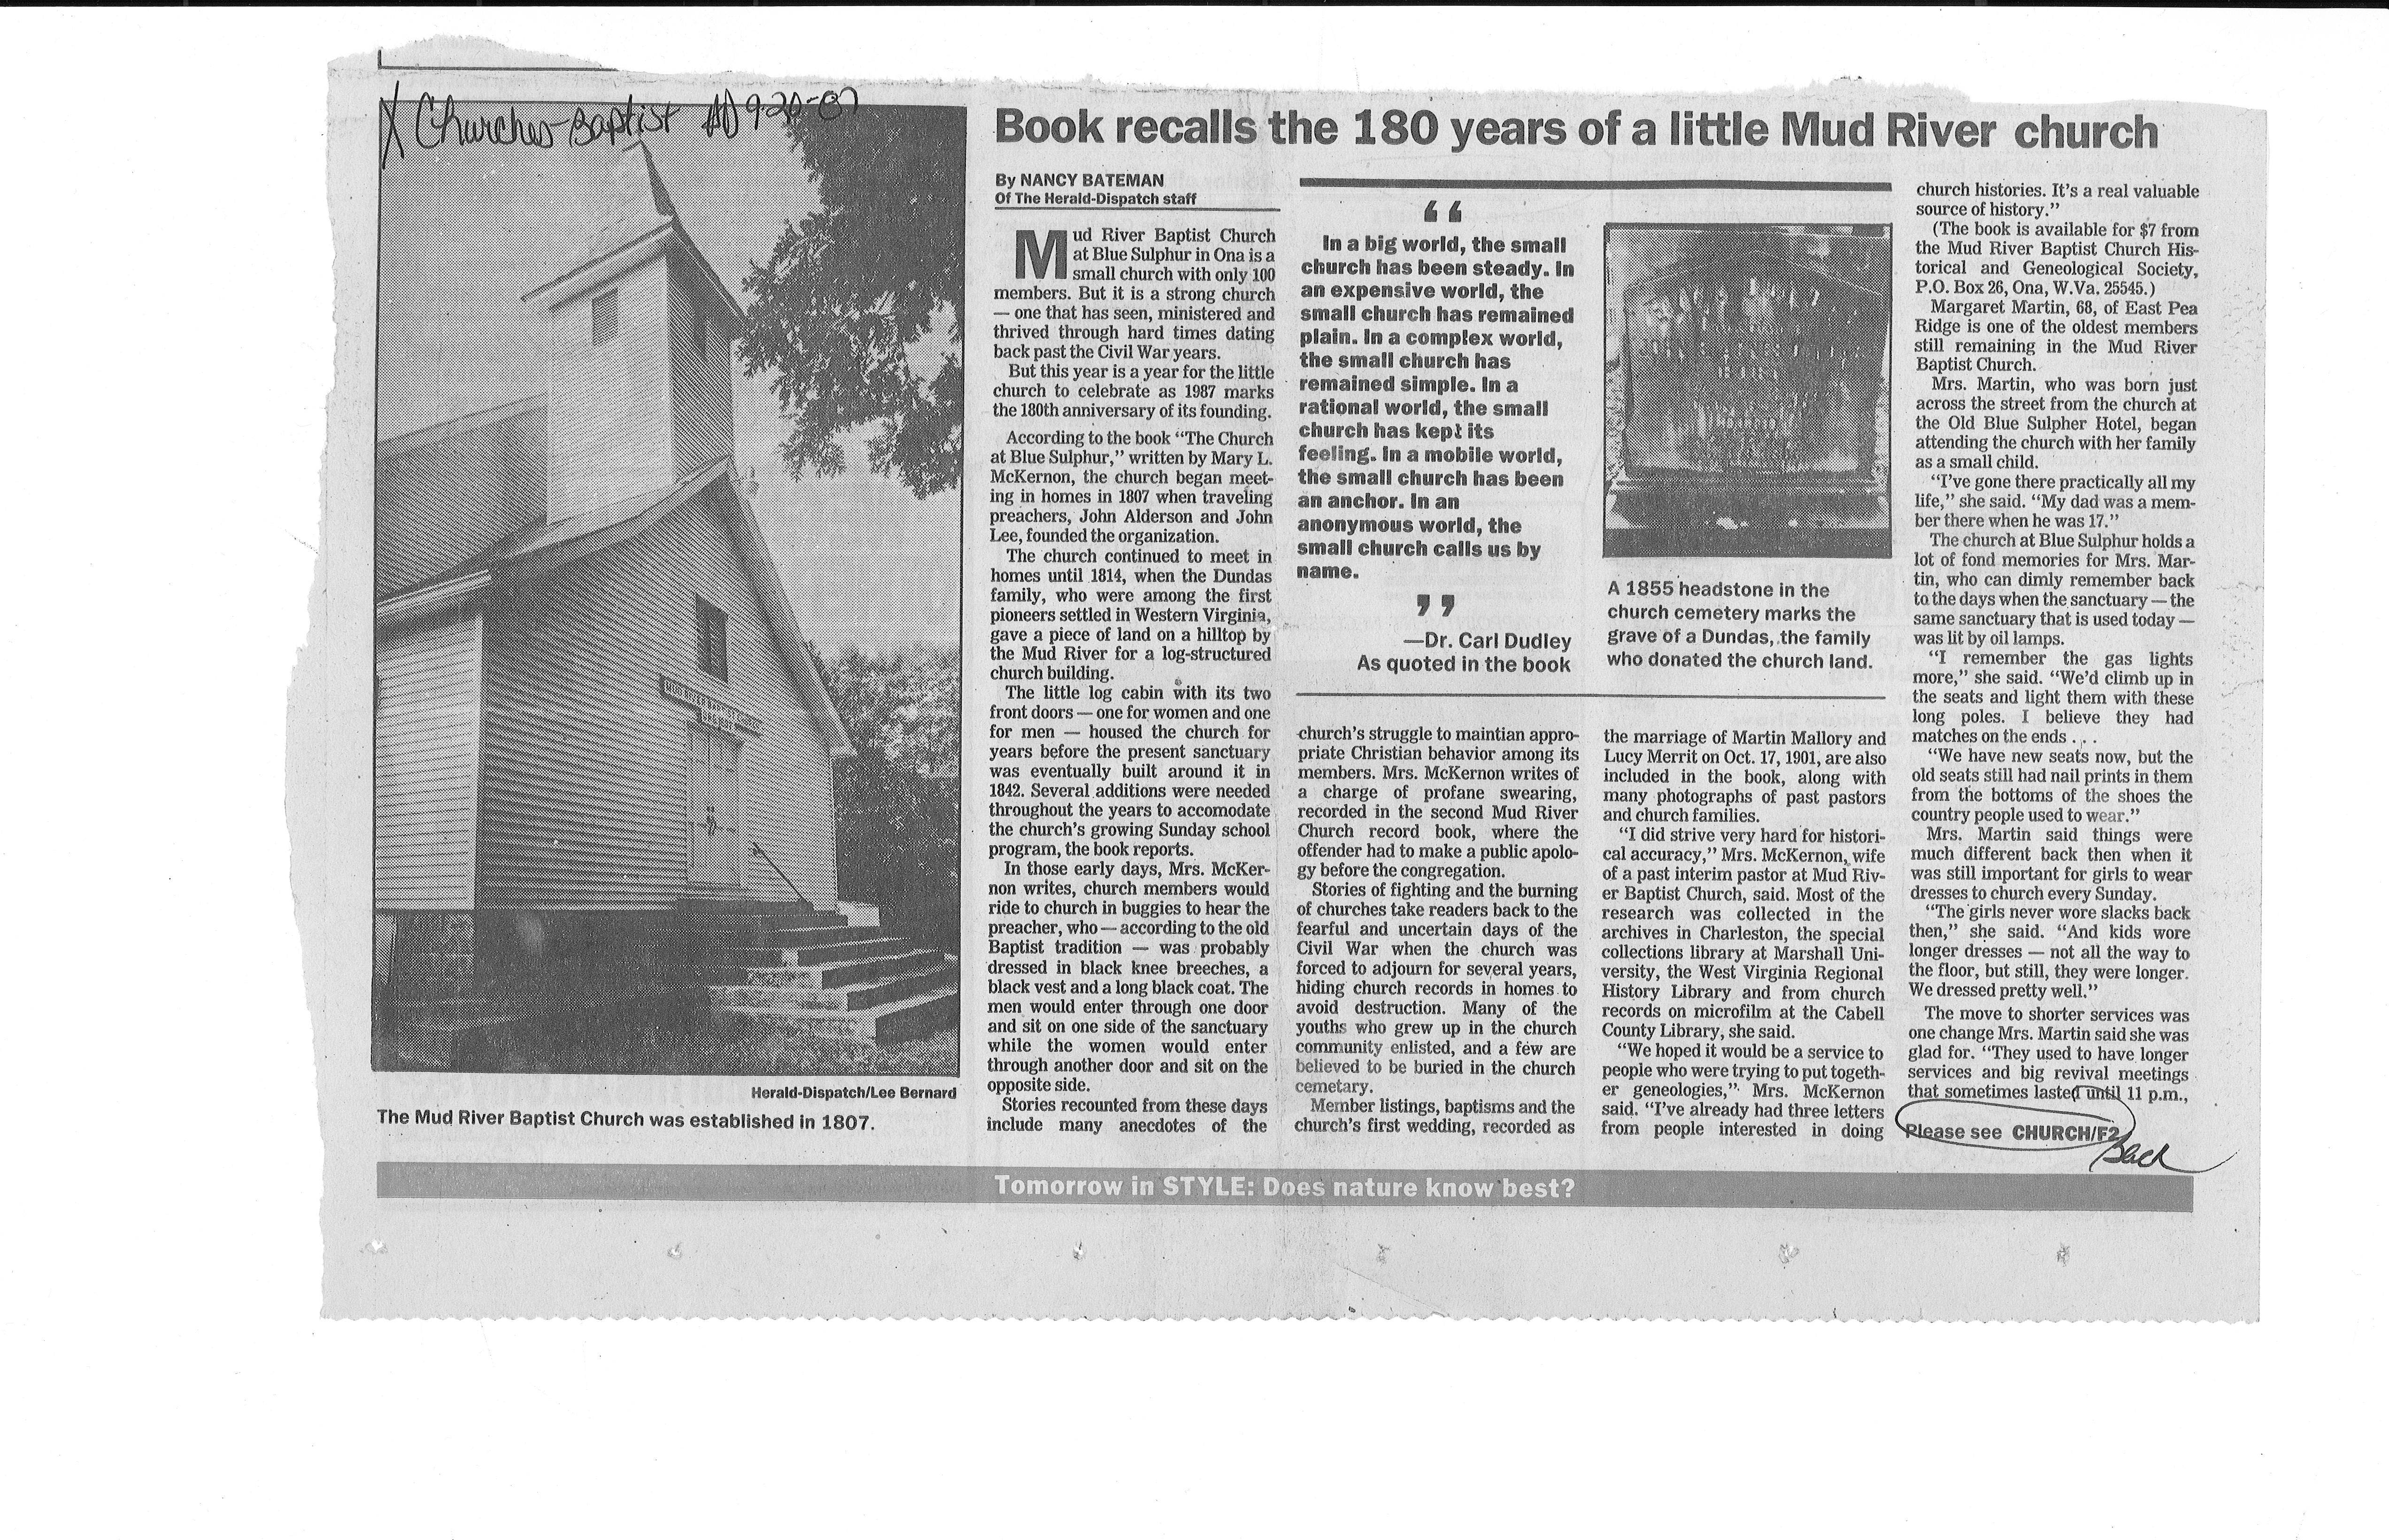 Part 1/2 article on Mud River Baptist. Courtesy of Marshall University Special Collections